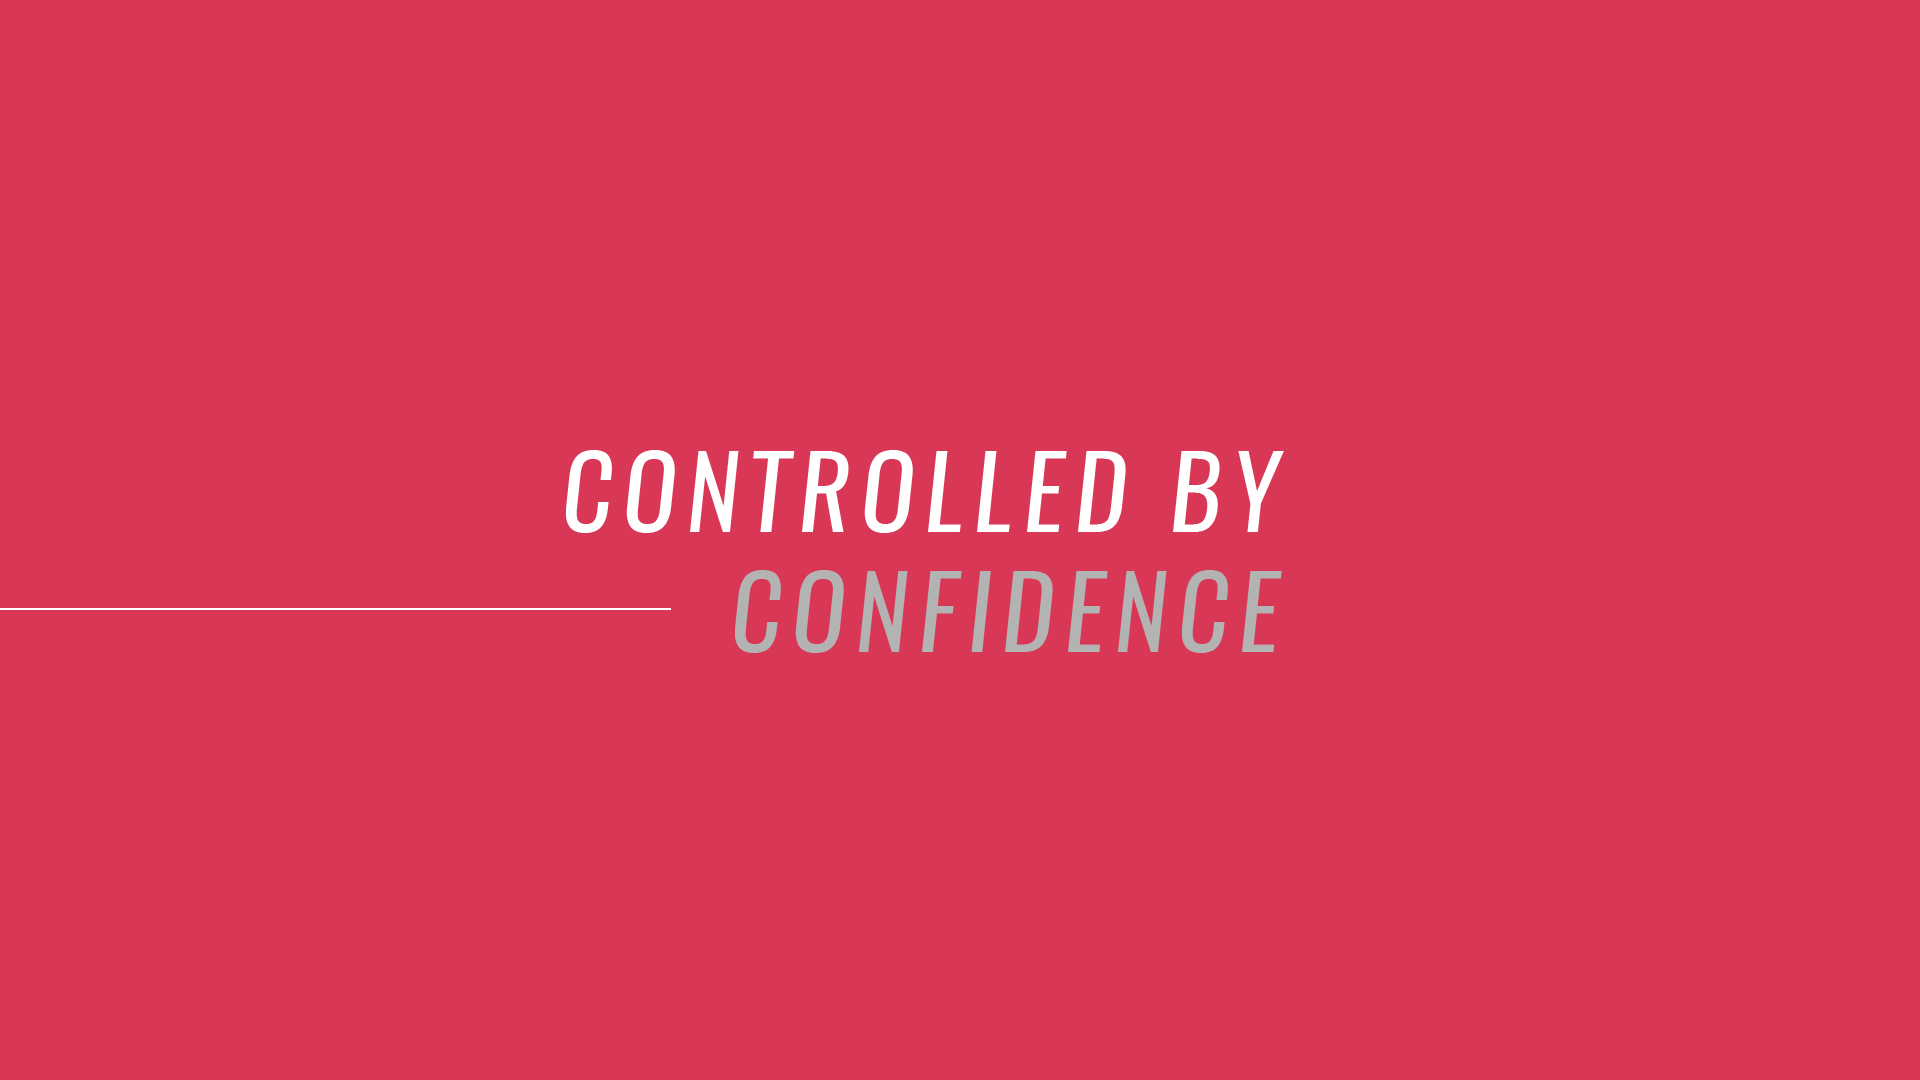 Controlled by Confidence-01.png